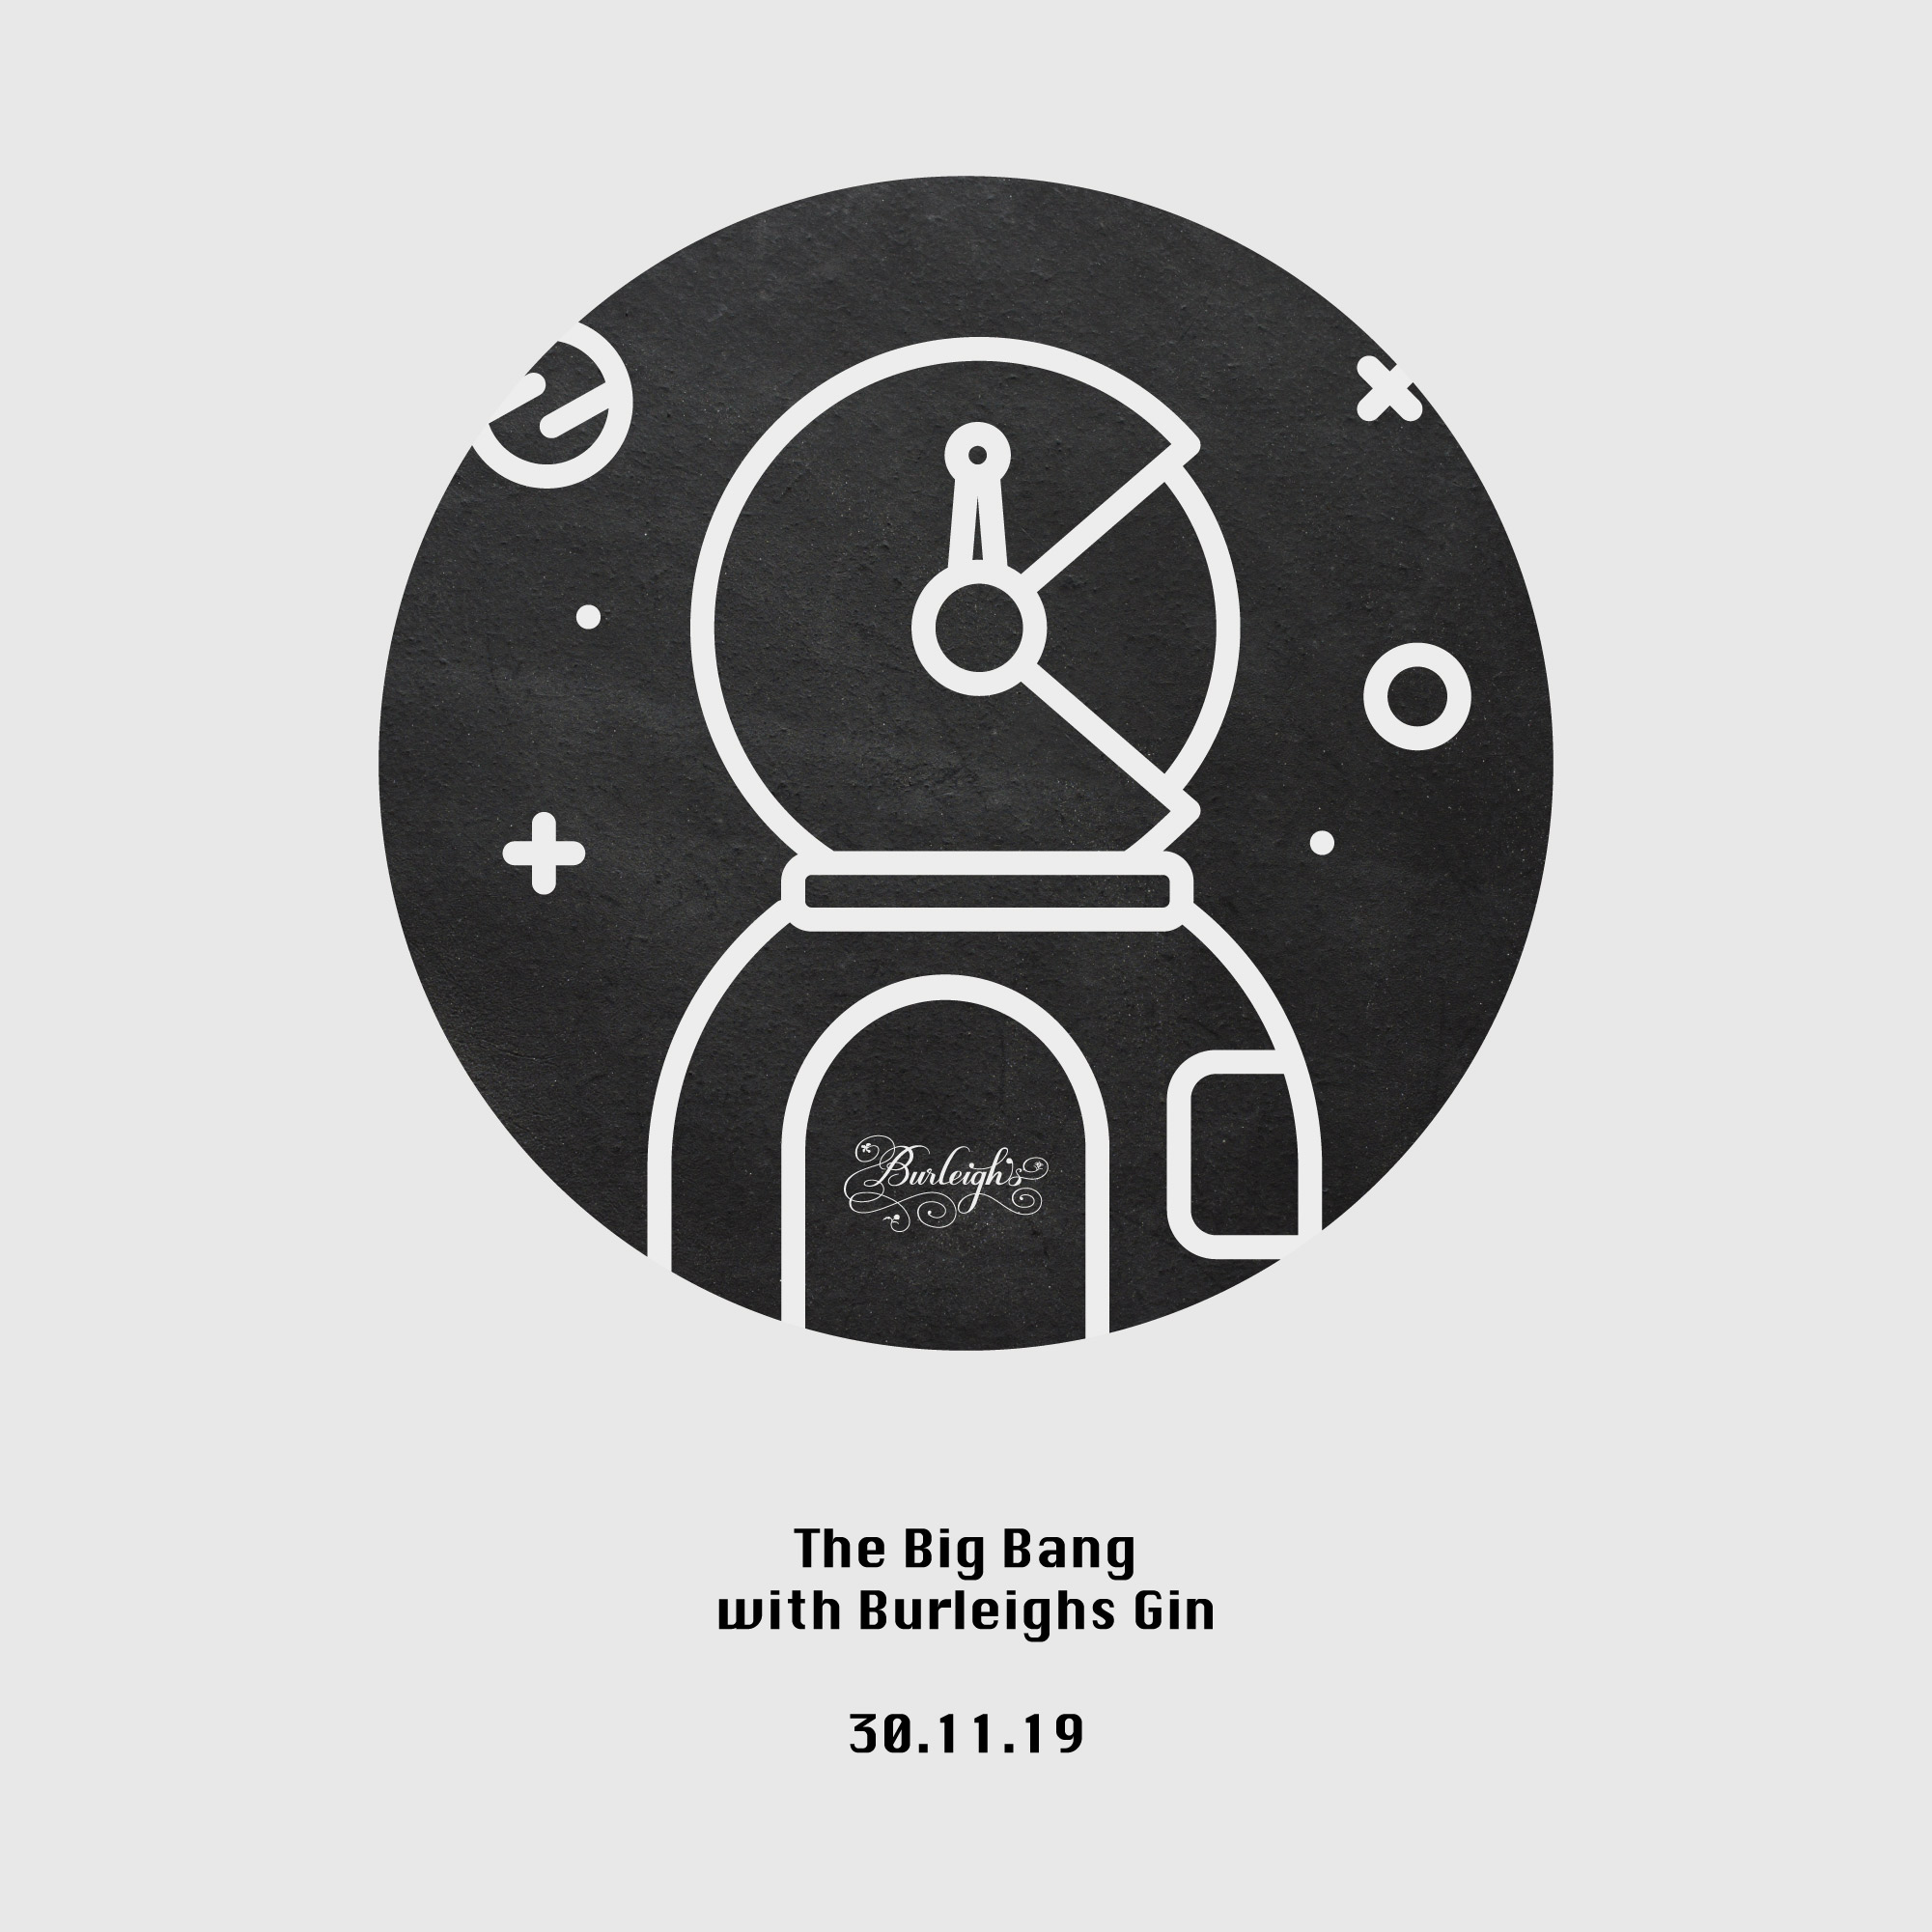 burleighs gin Big Bang